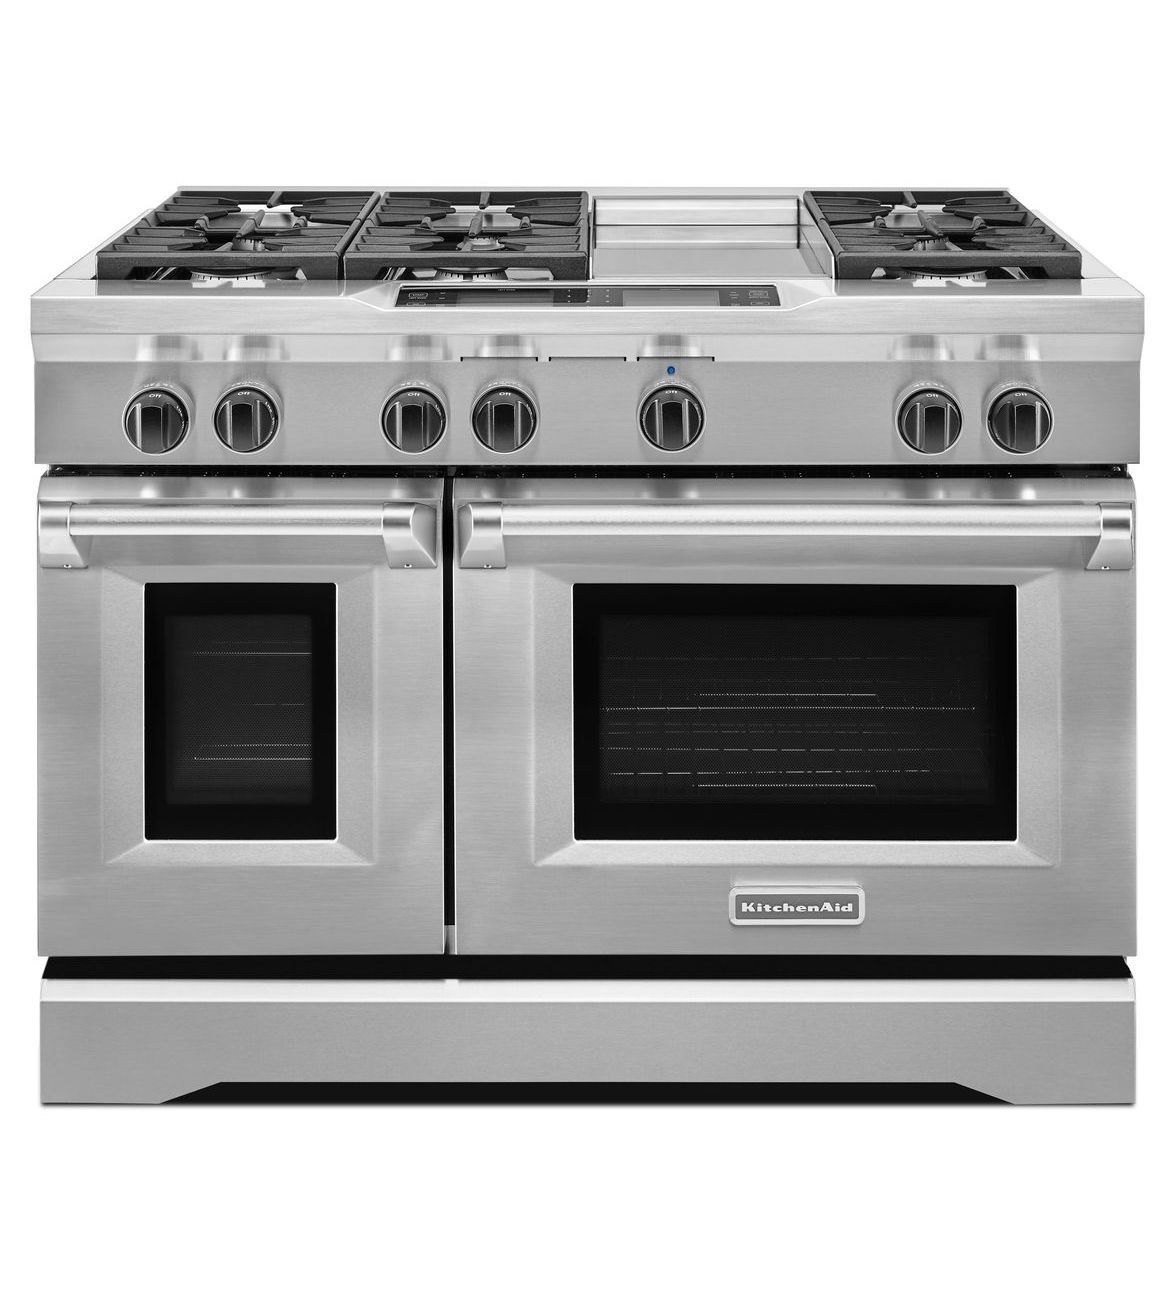 Kitchenaid 6 Burner Range